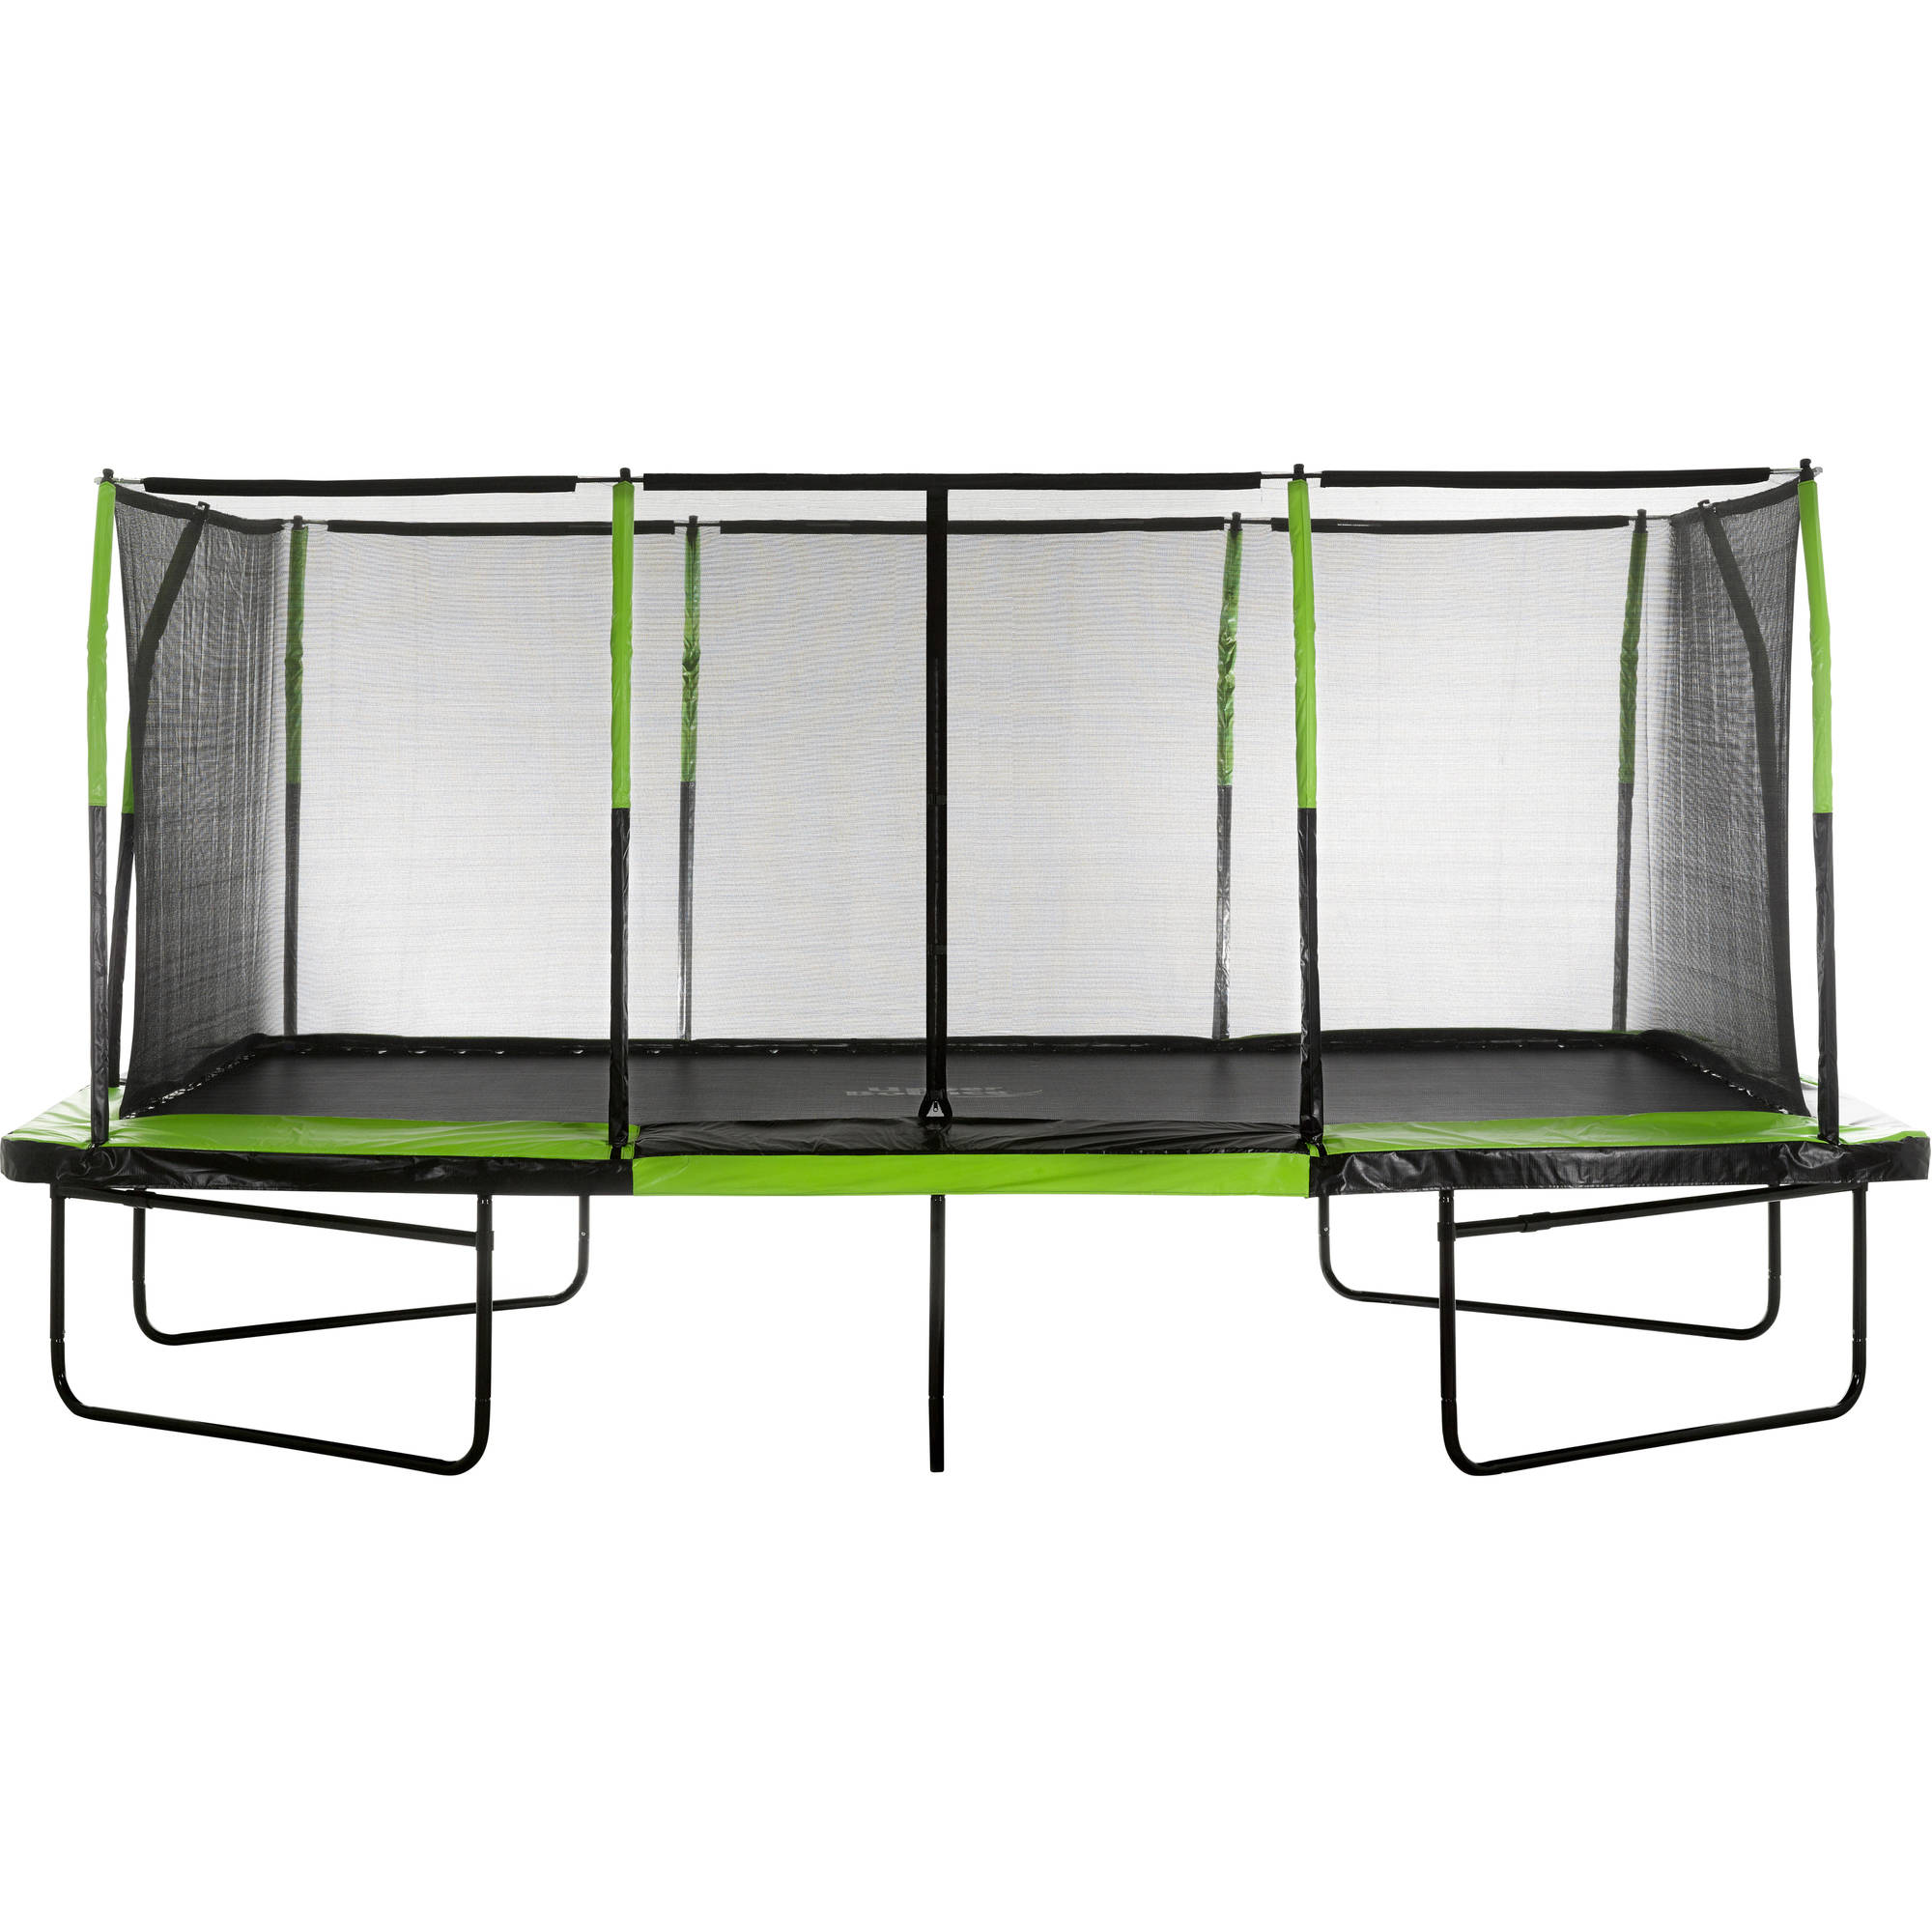 Upper Bounce Rectangle 10 x 17 Foot Trampoline with Enclosure